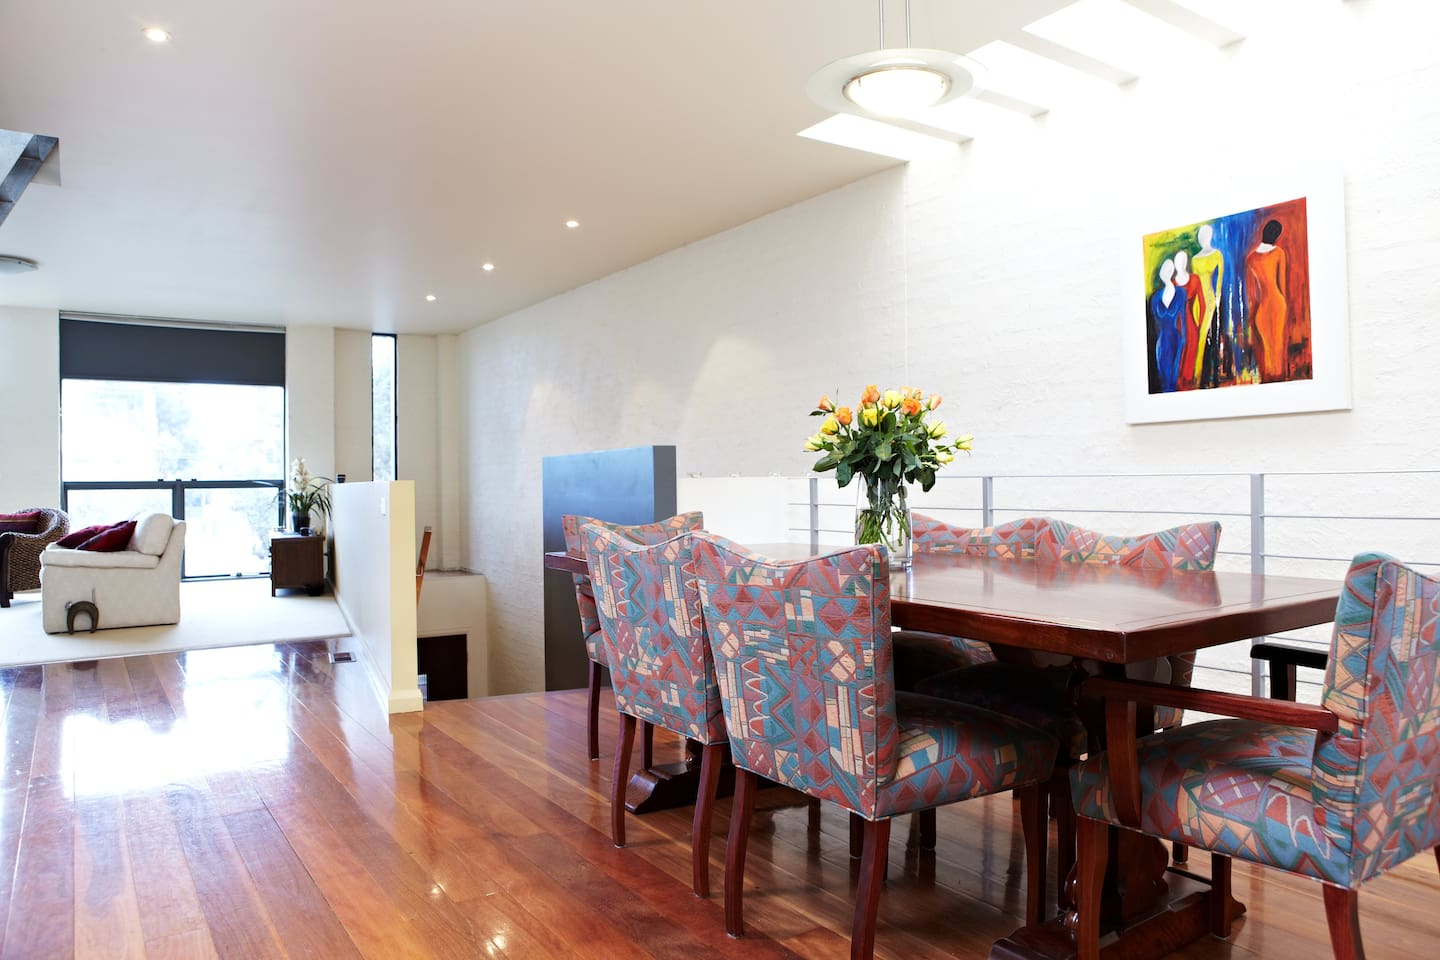 Large spacious living rooms are on the first floor in this upside down house with bedrooms on ground floor